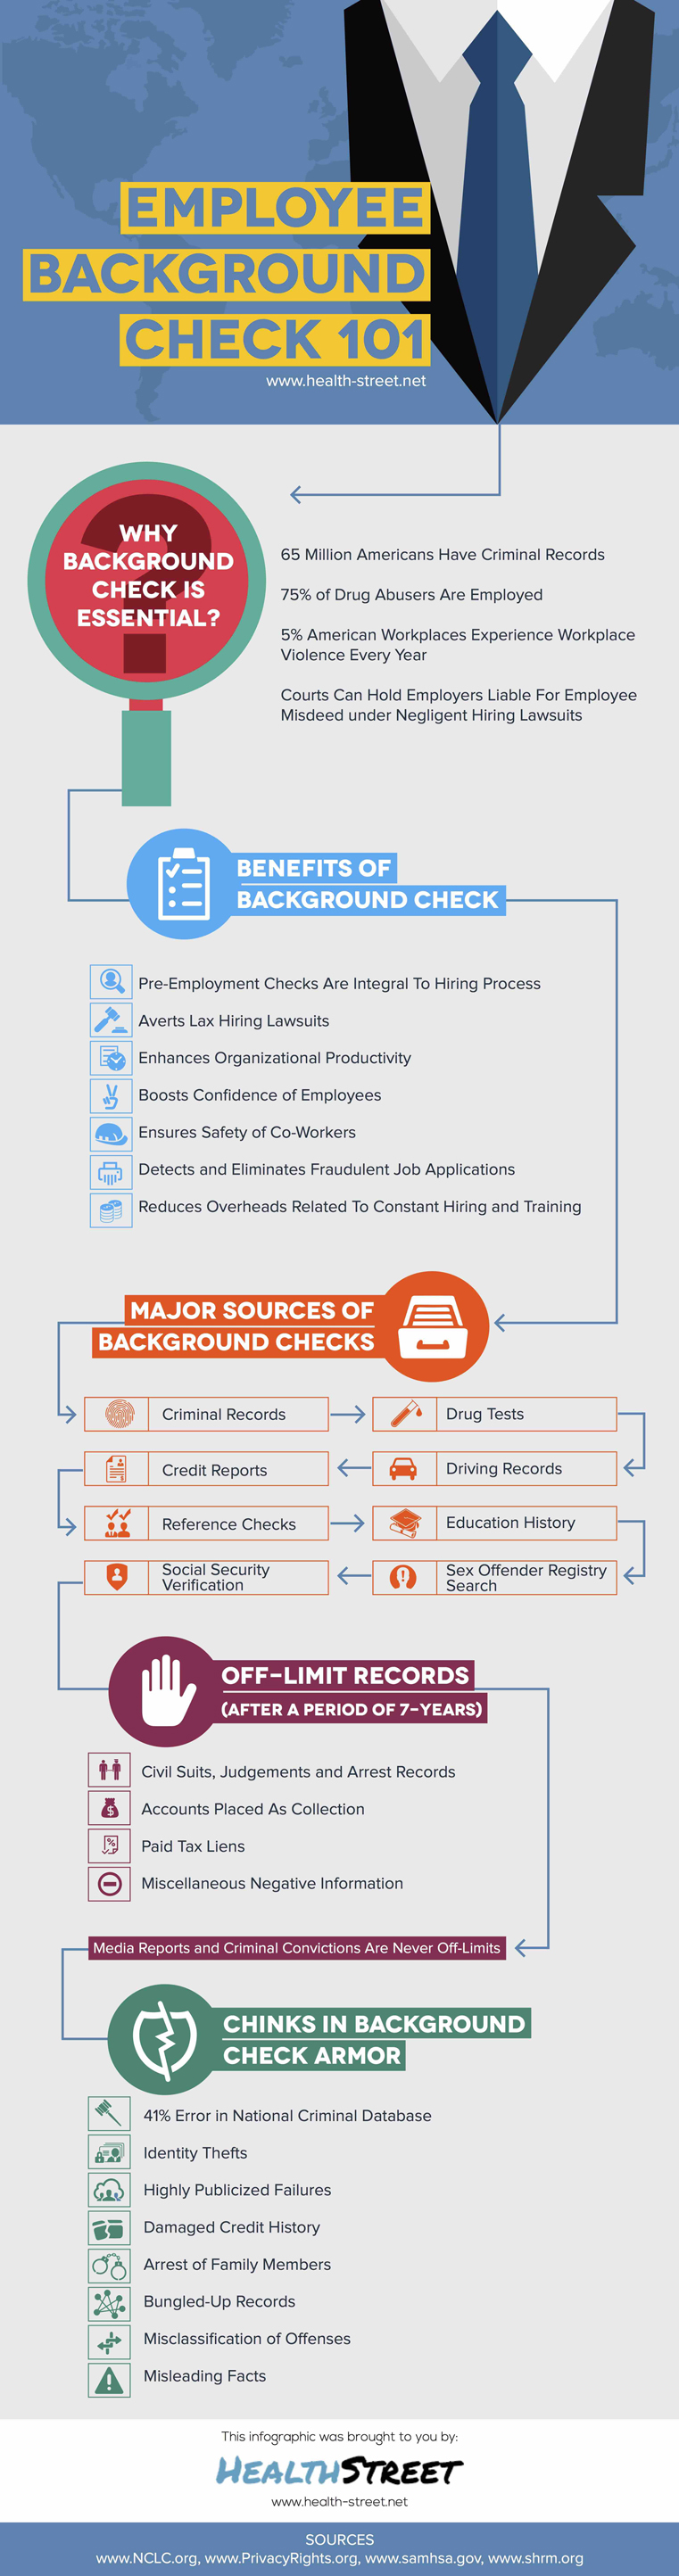 Employee-Background-Check-101-Infographic